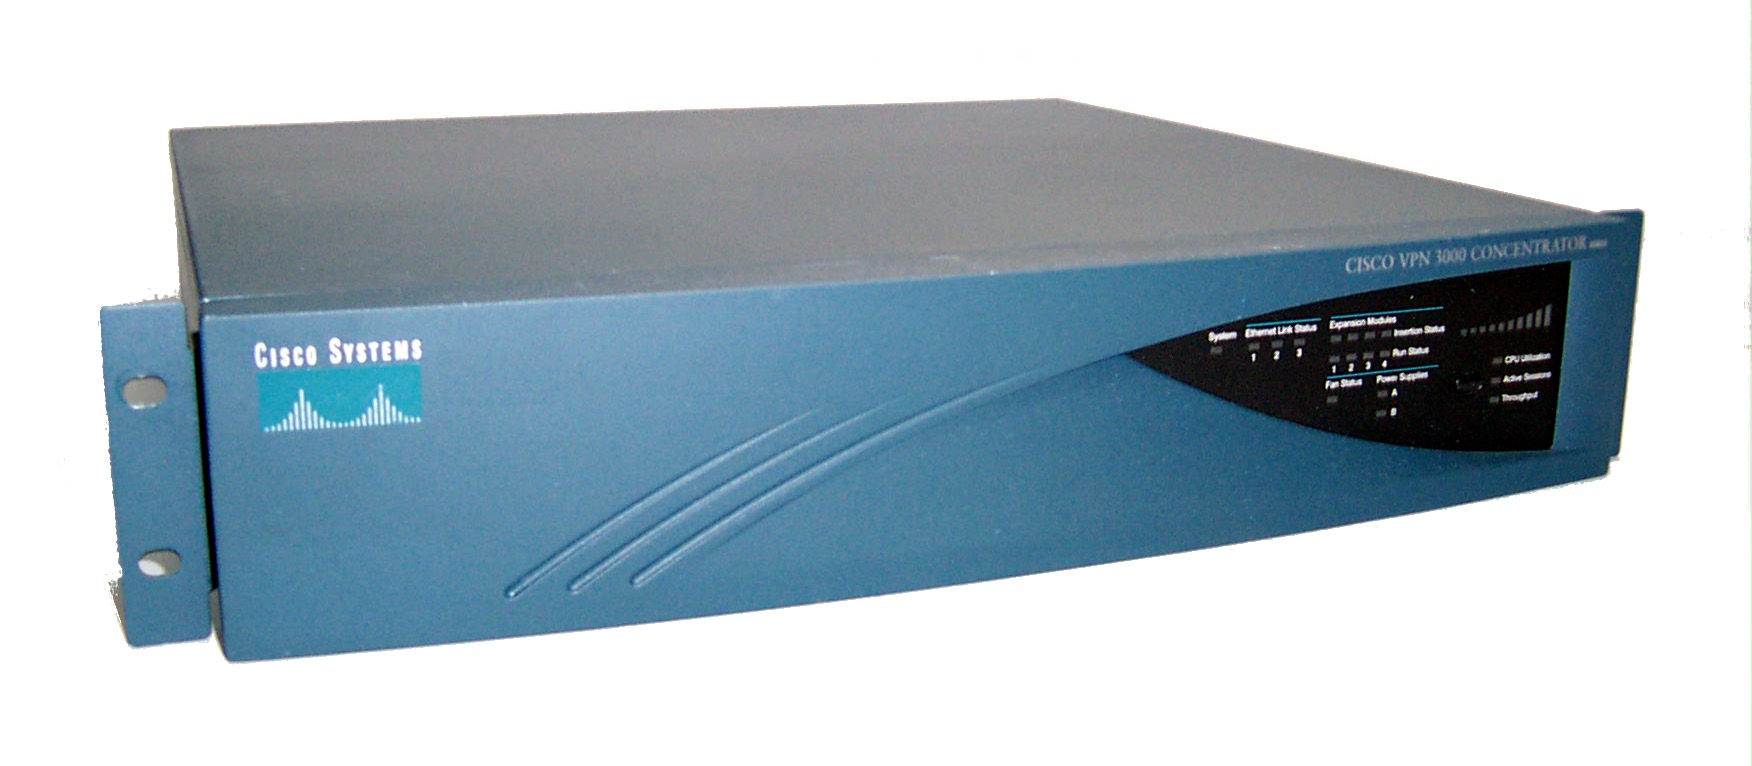 Cisco VPN 3000